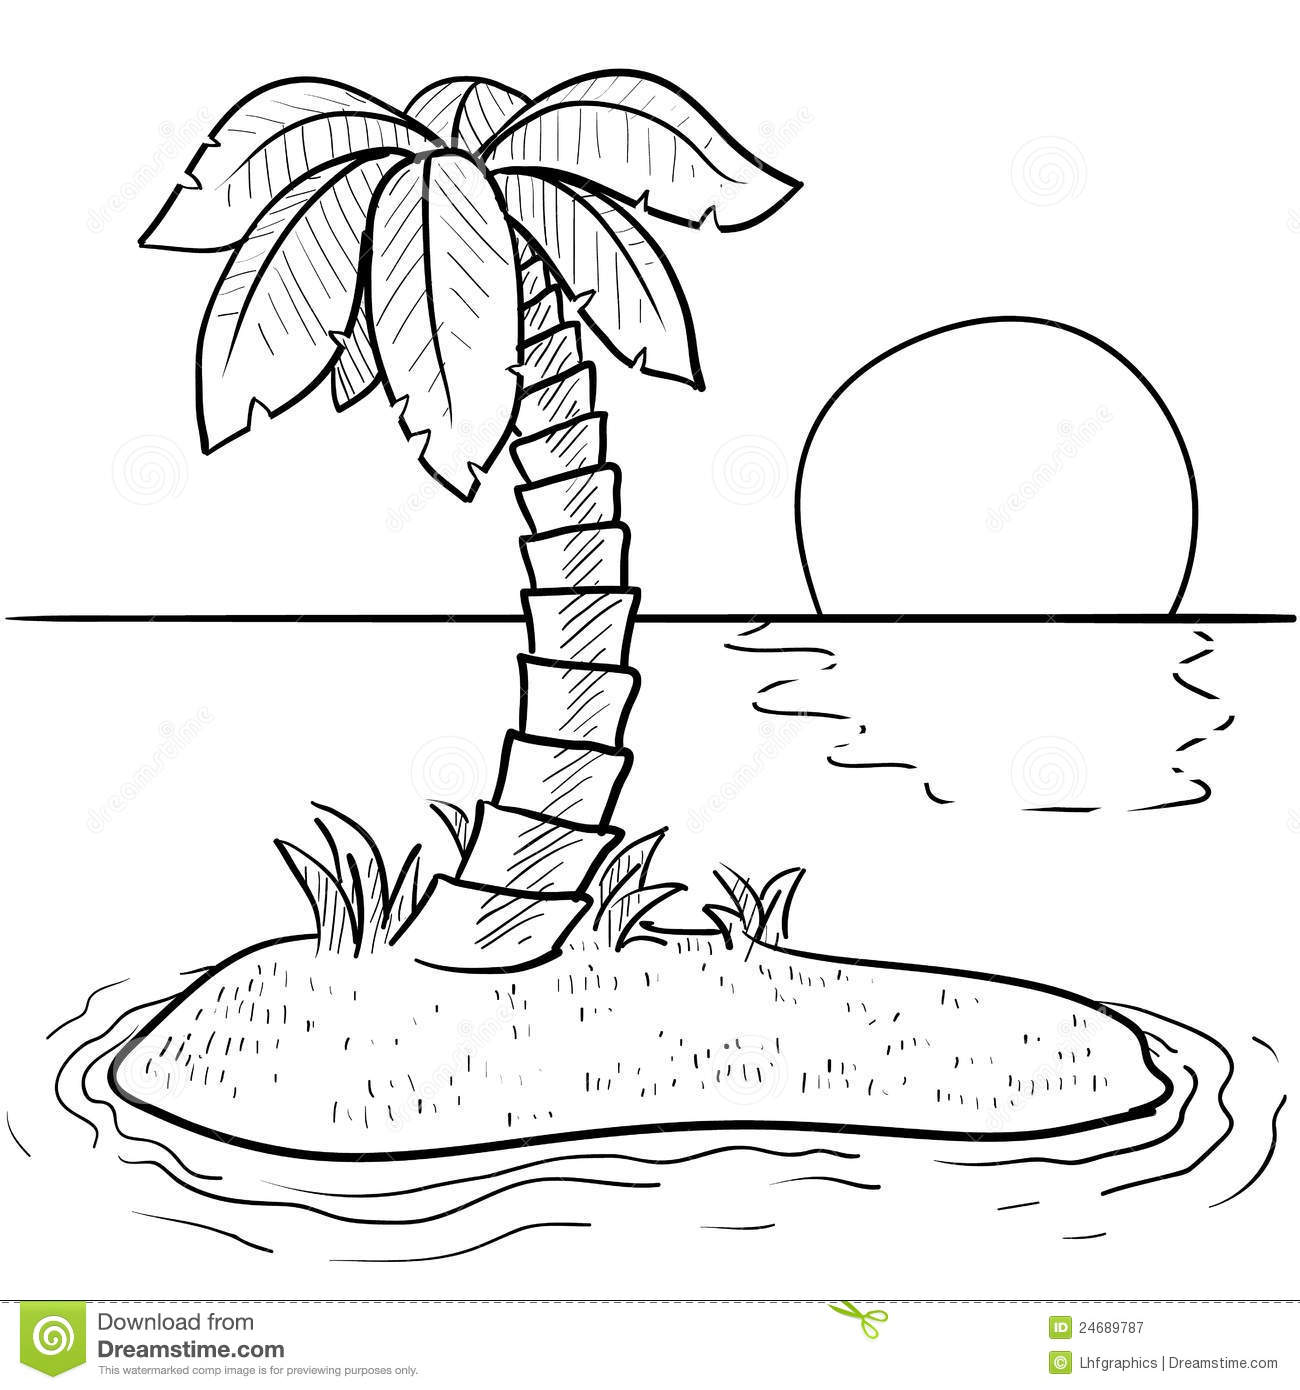 Tropical Island Vector Royalty Free Stock Photography Image 24689787